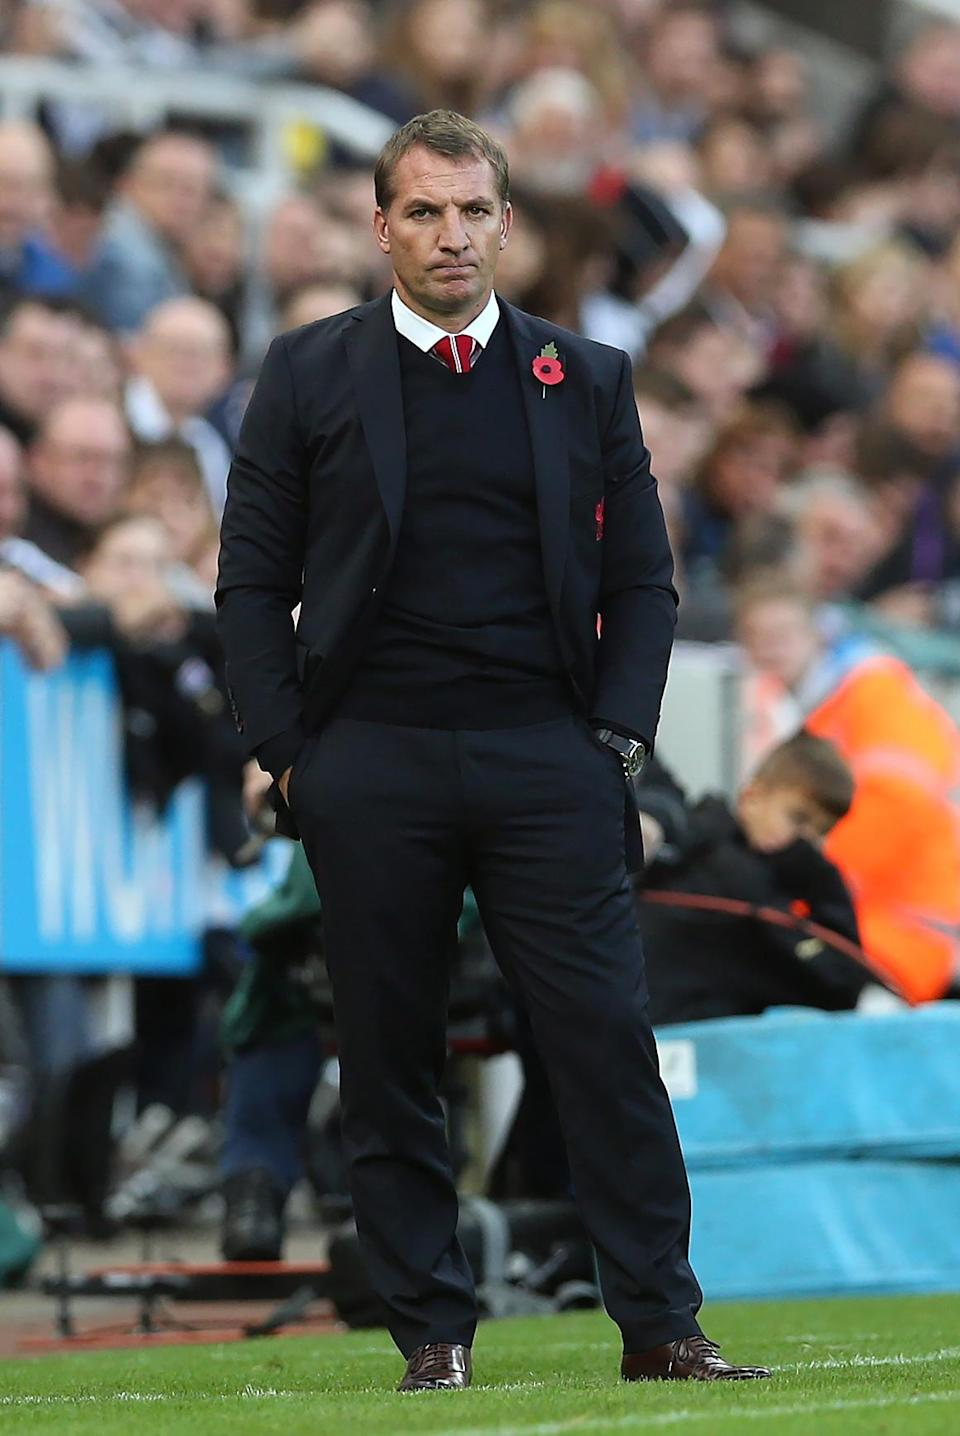 Liverpool''s manager Brendan Rodgers stands on the sidelines during their English Premier League match against Newcastle United, at St James' Park in Newcastle-upon-Tyne, northeast England, on November 1, 2014 (AFP Photo/Ian Macnicol, Ian Macnicol)